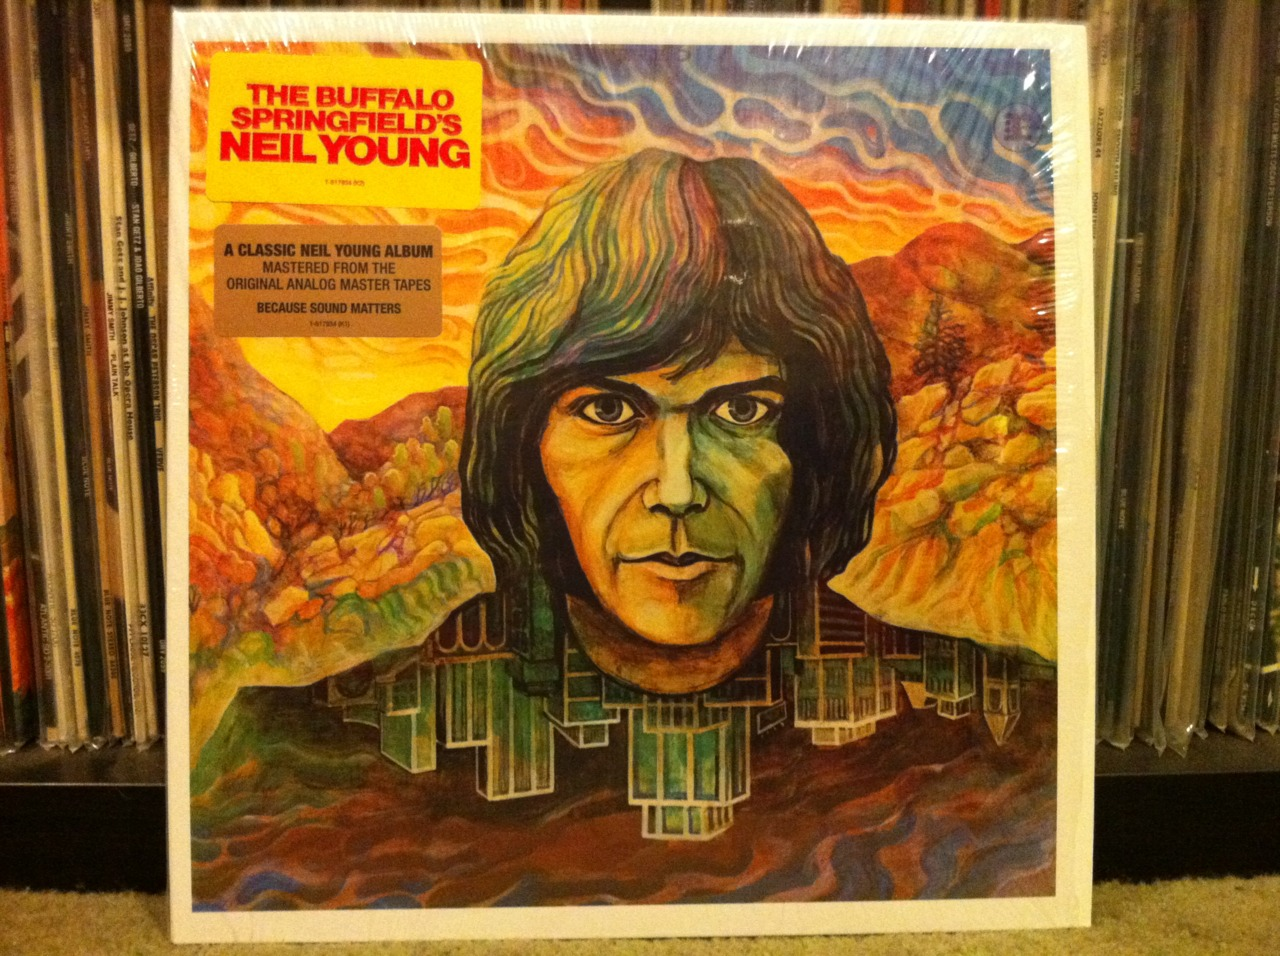 Neil Still Hates It.    Make no mistake. This record is the boiled down essence of genius. I guess I like it more than Neil Young does. But if you take Mr. Young's analysis of his own work too seriously you'd think he was a failure. This is the guy who's been working on a comprehensive box-set treatment of his entire catalog since I was in junior high school. I guess he's got an inferiority complex. That's his problem. This record is awesome.   Neil's eponymous album is nearly perfect in every way. It's the perfect transition record between Buffalo Springfield and the Crazy Horse years (it also happens to be the only album between the two). It's heavy on careful song craft and mixing in a way that's similar to what cutting a single for Buffalo Springfield must have been like. Sure, it's overdub city. But, Neil plays all the overdubs to his advantage. Who can argue with layers and layers of Neil? Other than Neil? There's some anger and emotional purging on this record that would become more prominent on his next album with Crazy Horse (Everybody Knows This Is Nowhere). A whole lot of longing too. This guy can paint a lonely sound picture like no other.   Not too many guys are bold enough to start their solo career with an instrumental. Neil does just that with The Emperor of Wyoming. Gutsy. It sounds like it was written for a movie that plays in Neil's mind. The Loner is next. That's Neil. If I Could Have Her Tonight covers the longing angle pretty nicely as does the next cut, I've Been Waiting For You. Man, that song is so great I can listen to it over and over. The Old Laughing Lady is a tune that sounds like it should accompany a slide show about some lady you feel like you met years back. String Quartet From Whiskey Boot Hill is another instrumental and it was written by Neil's friend Jack Nitzsche. Here We Are In The Years is about a bunch of life happening all around you stuff and What Did You Do To My Life is a haunting story of a woman splitting on Neil. Sorr